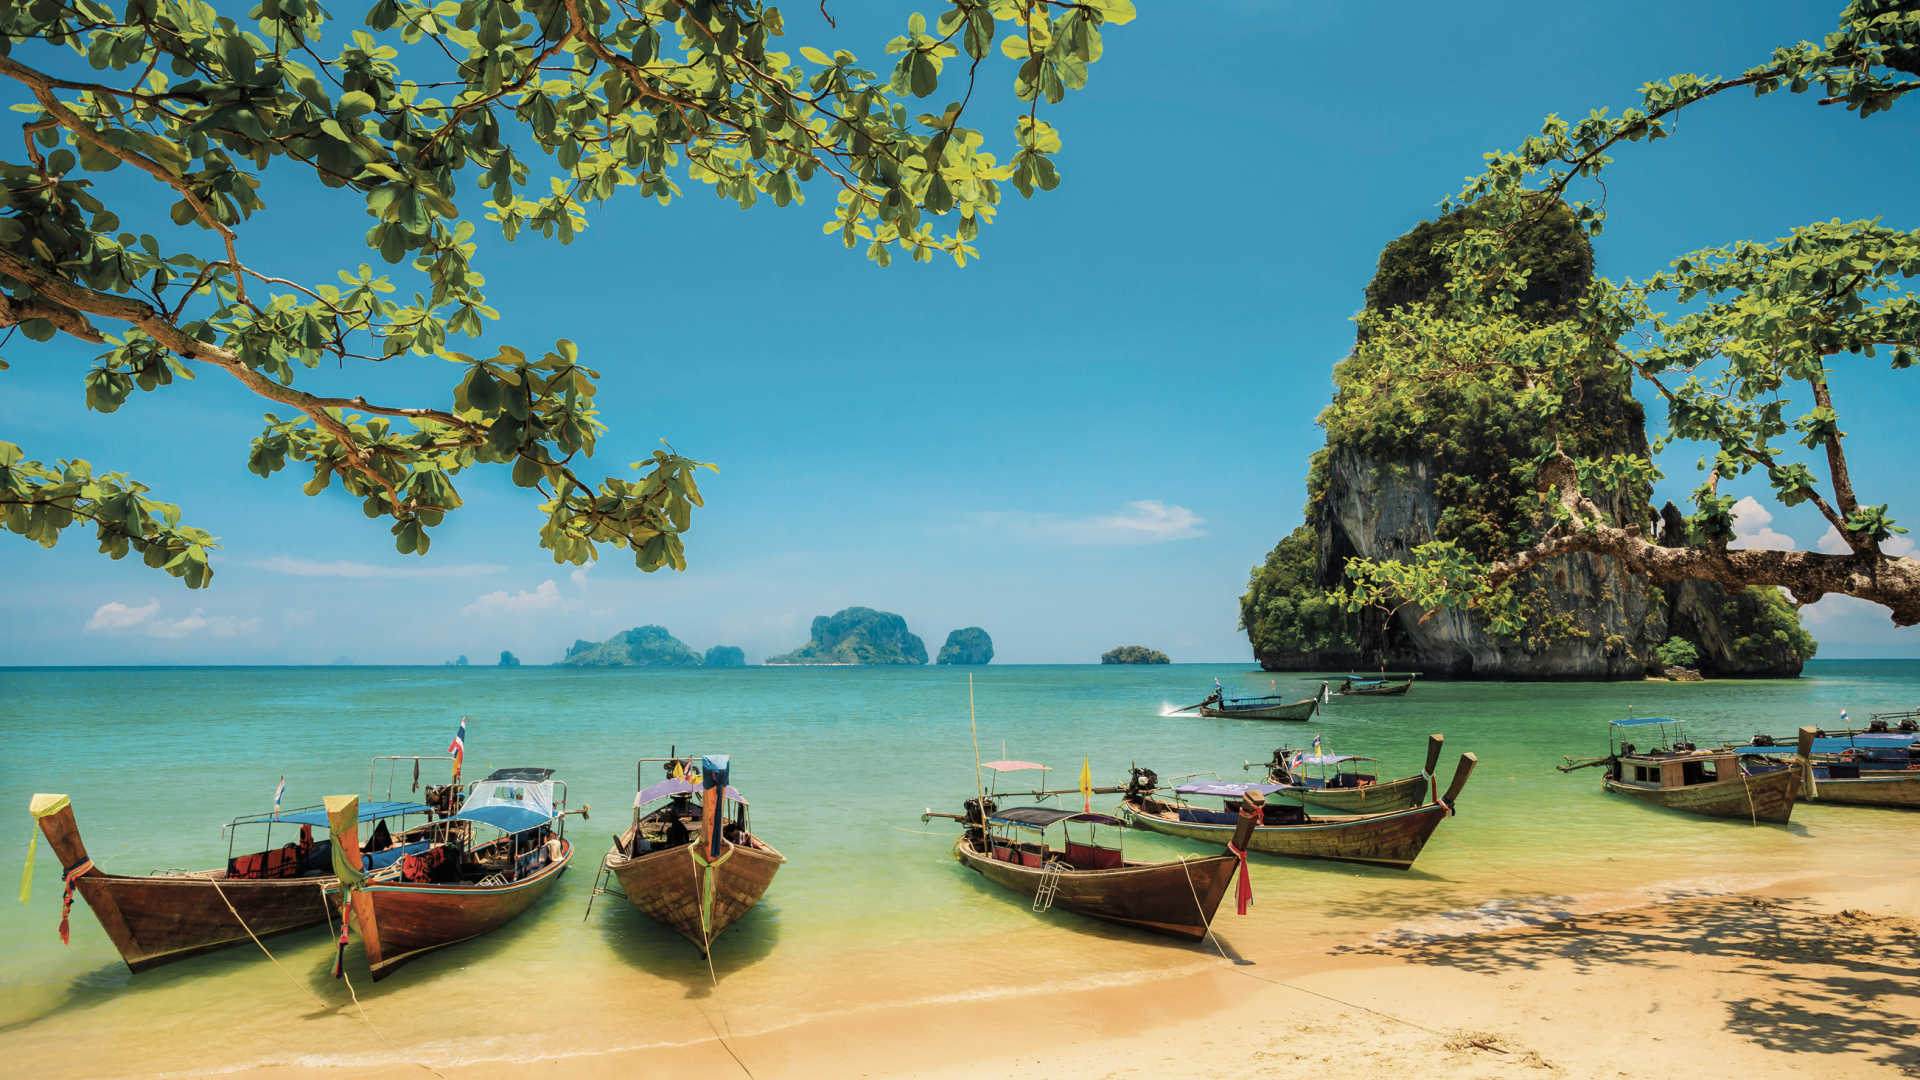 Boats packed on a beach in Thailand